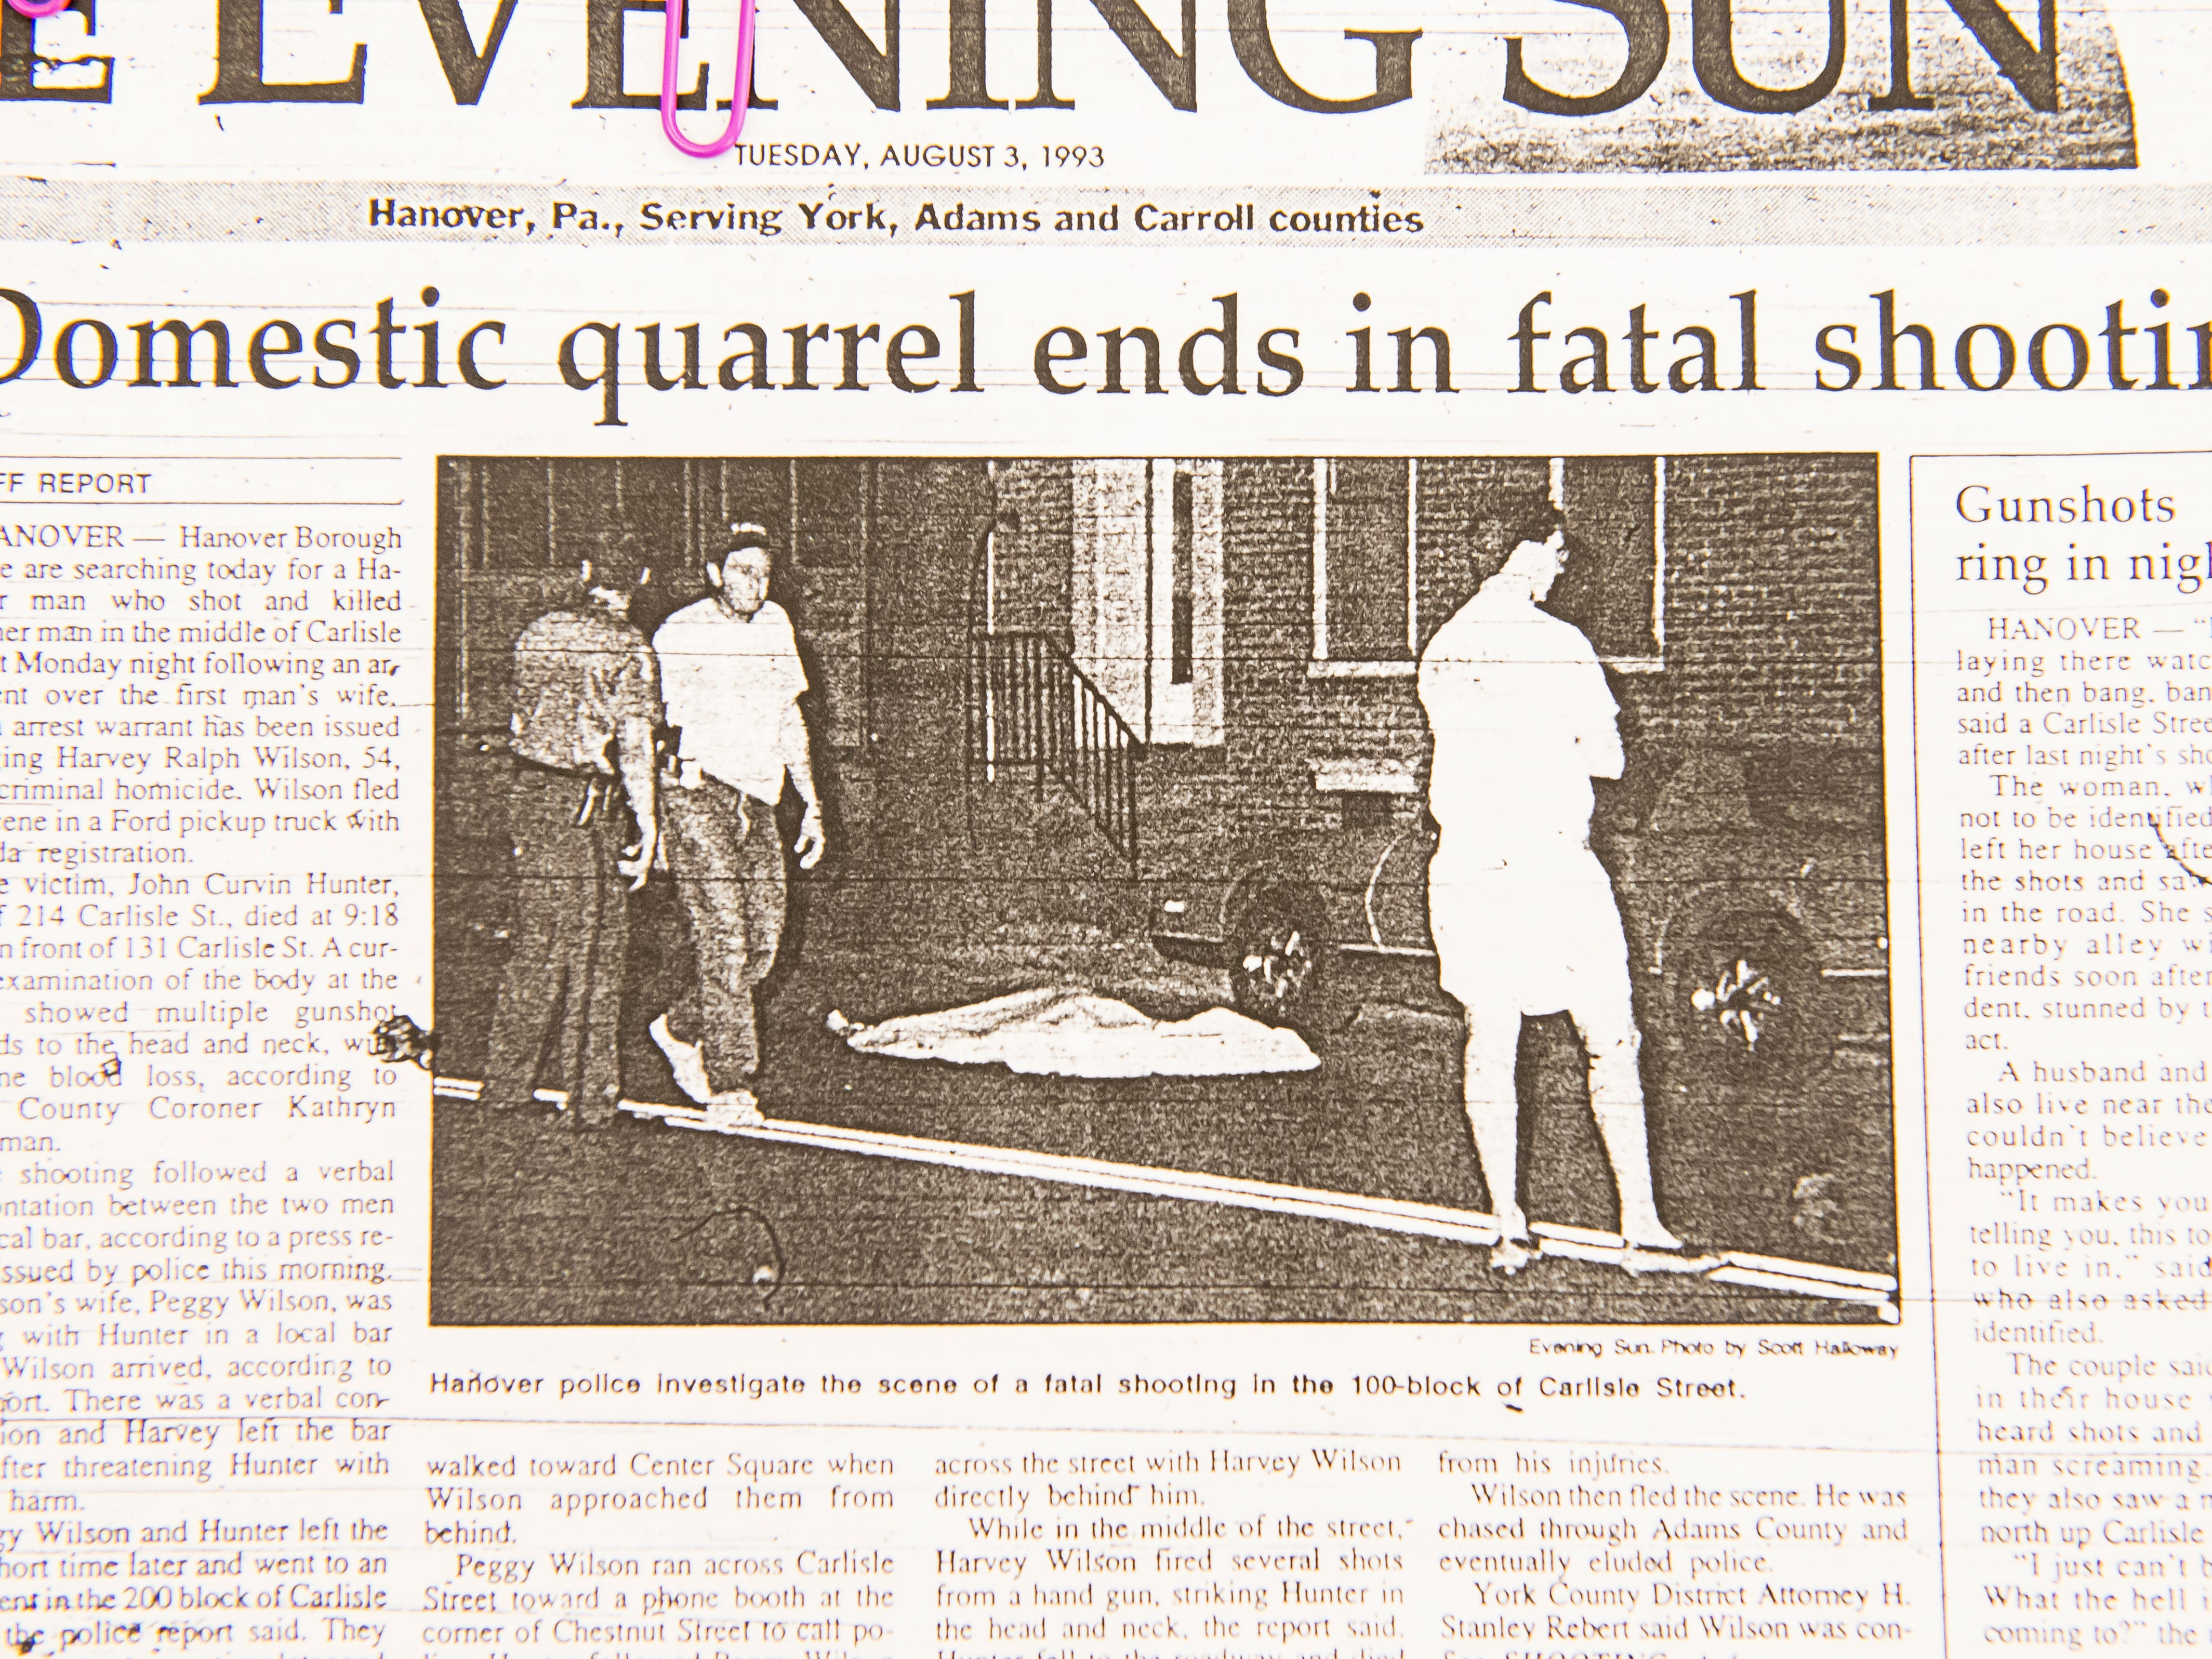 A newspaper clipping from 1993 talks about the shooting death of John Hunter on Carlisle Street.